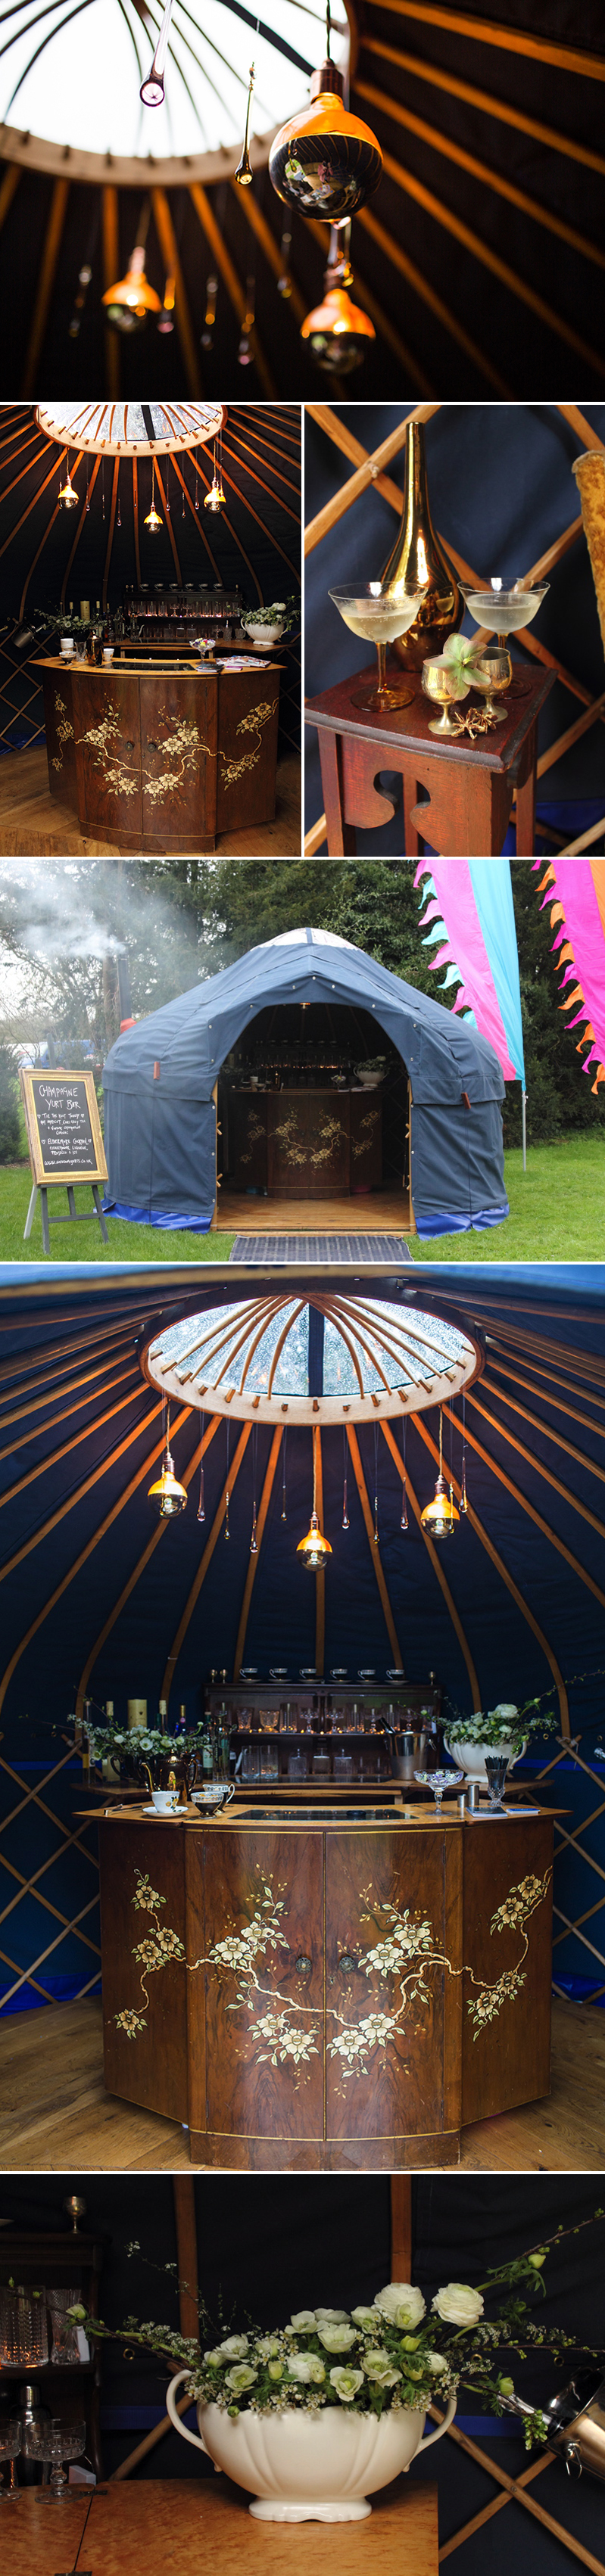 coco-wedding-venues-wedding-yurts-the-practical-guide-to-hiring-wedding-yurts-2